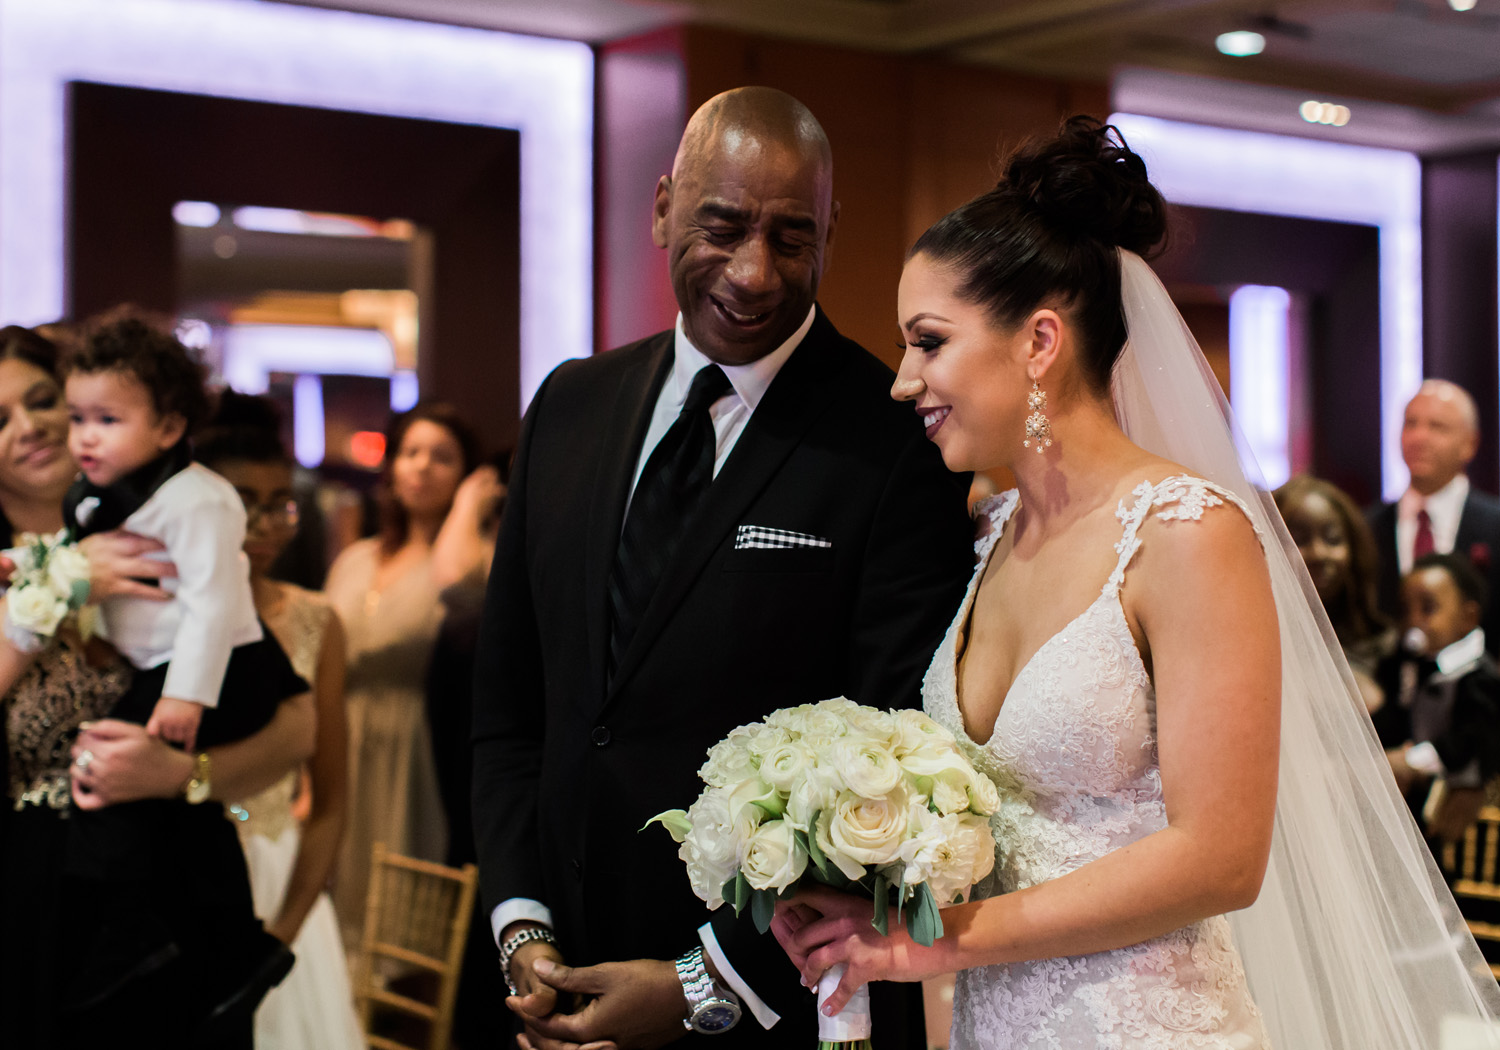 bellevue club wedding ceremony elegant seattle wedding.jpg